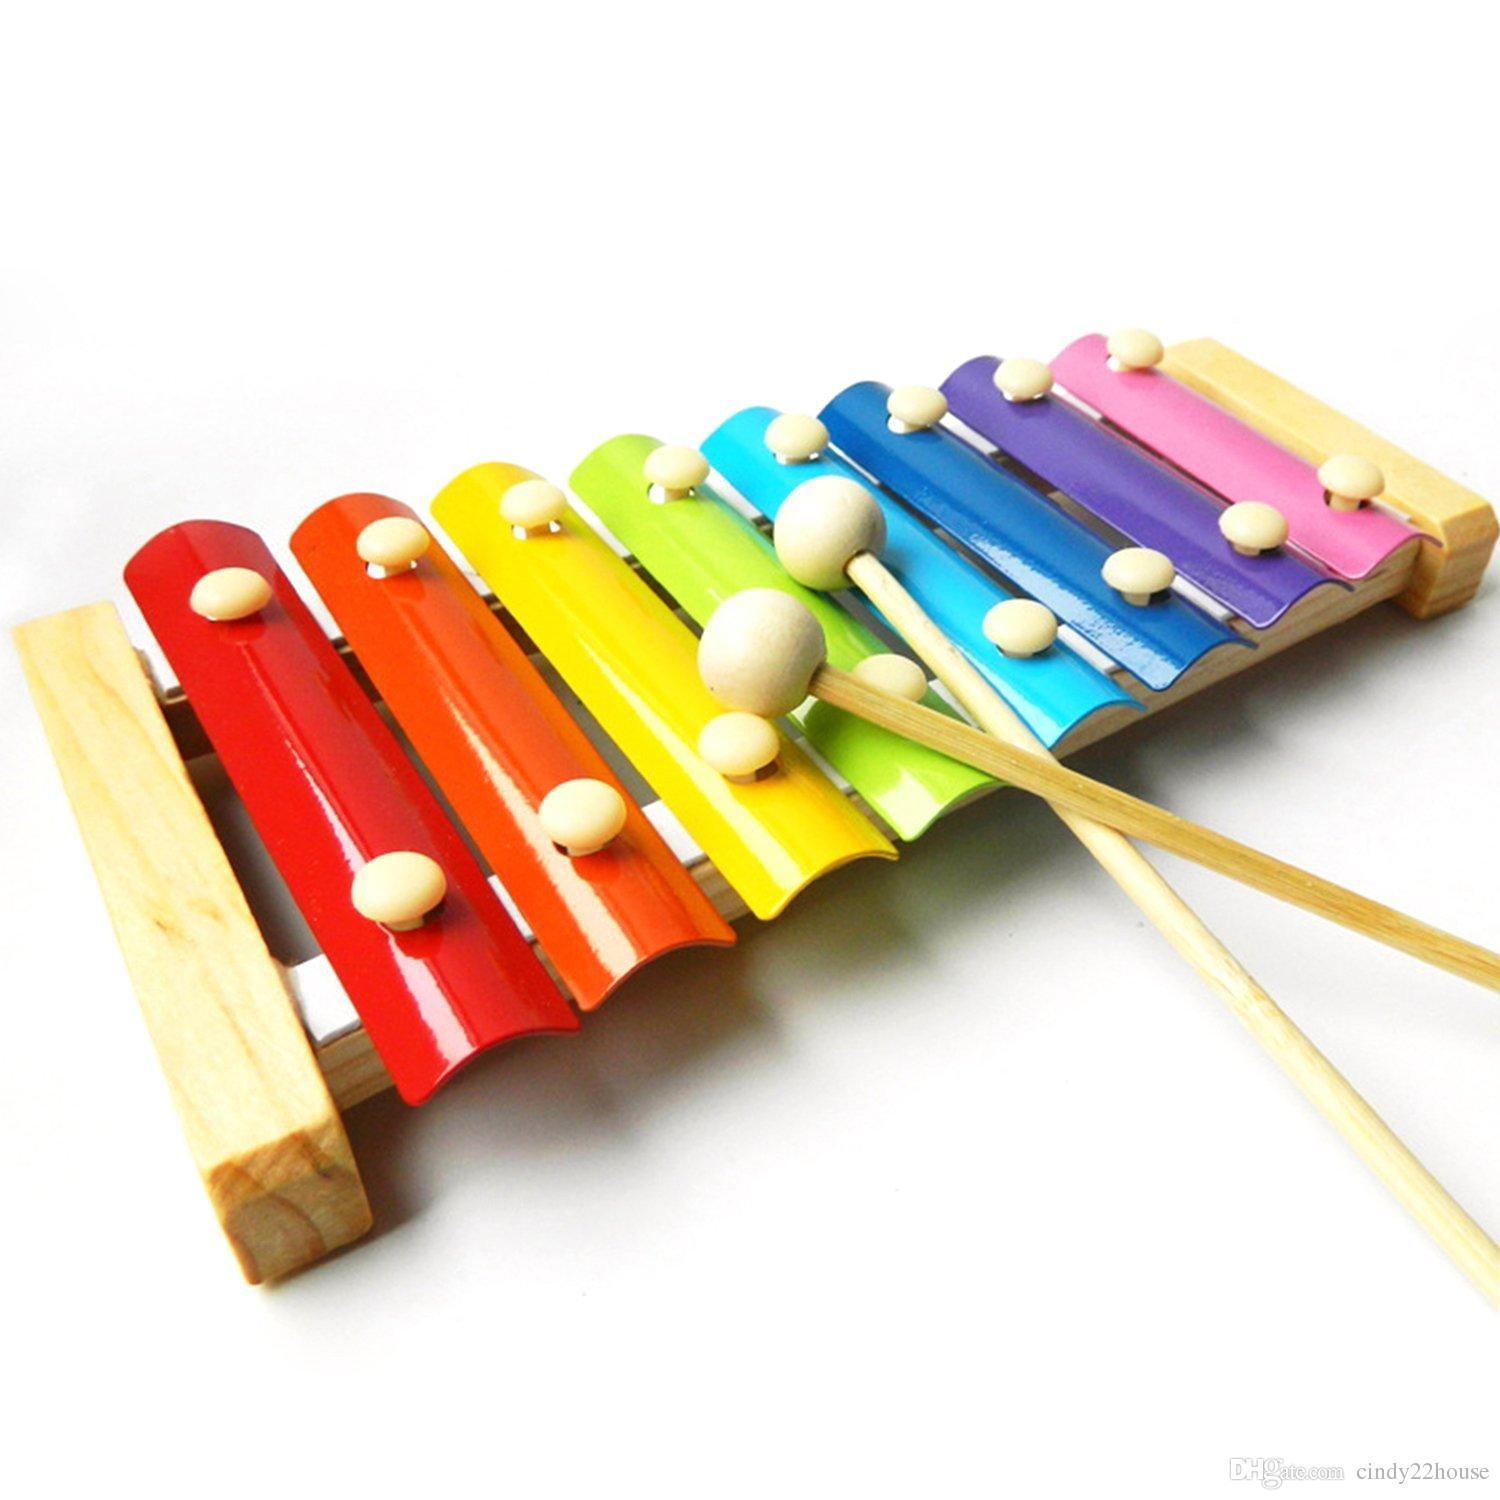 Wooden Musical Toys : Wooden notes xylophone children musical toy